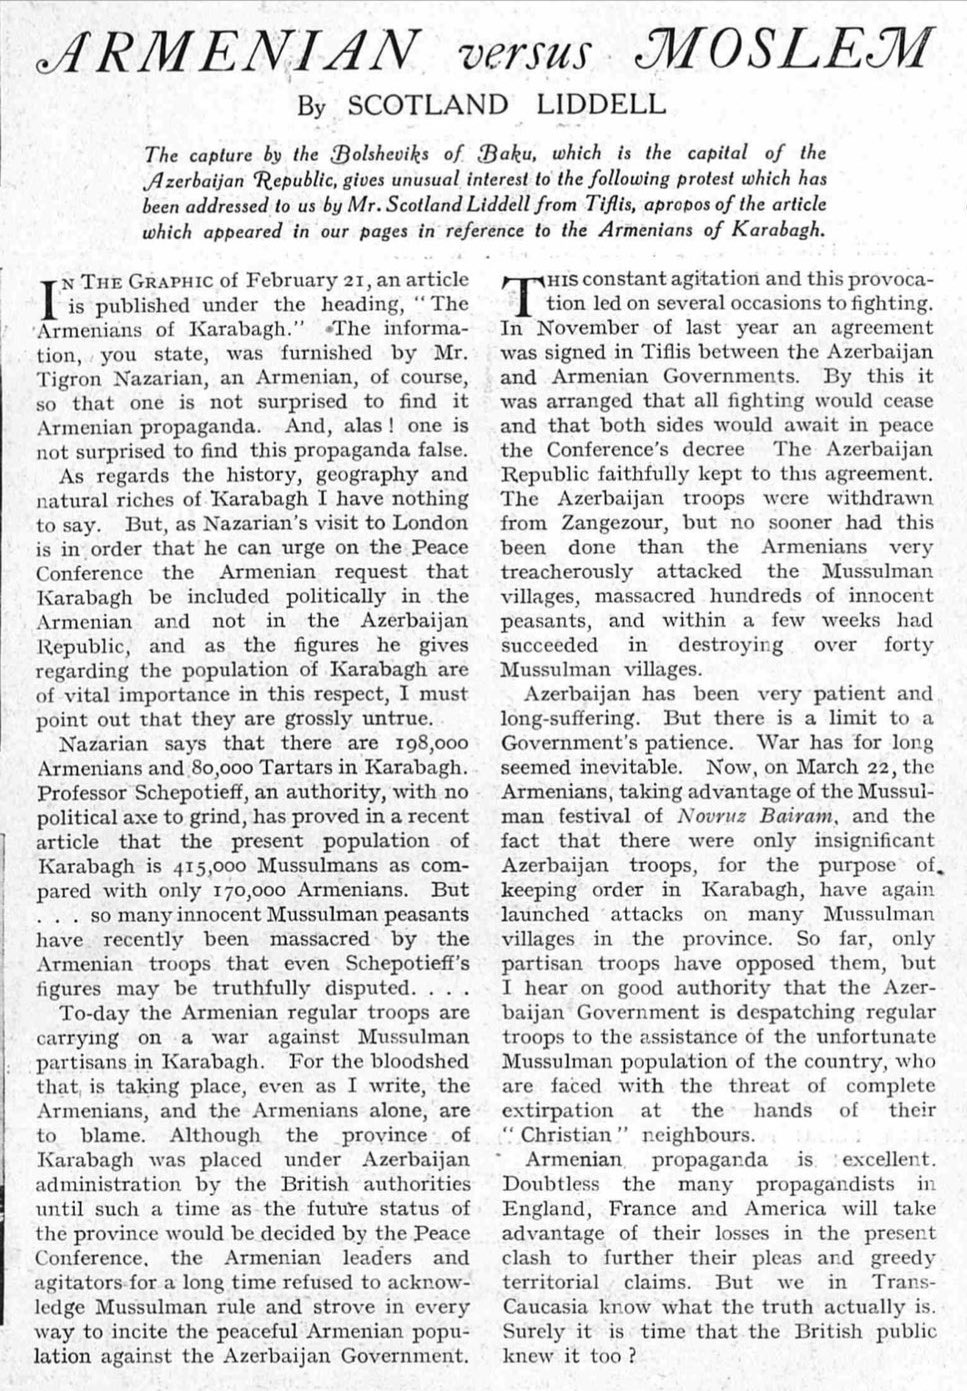 Armenian versus Moslem by Scotland Liddell, The Graphic, 8 May 1920